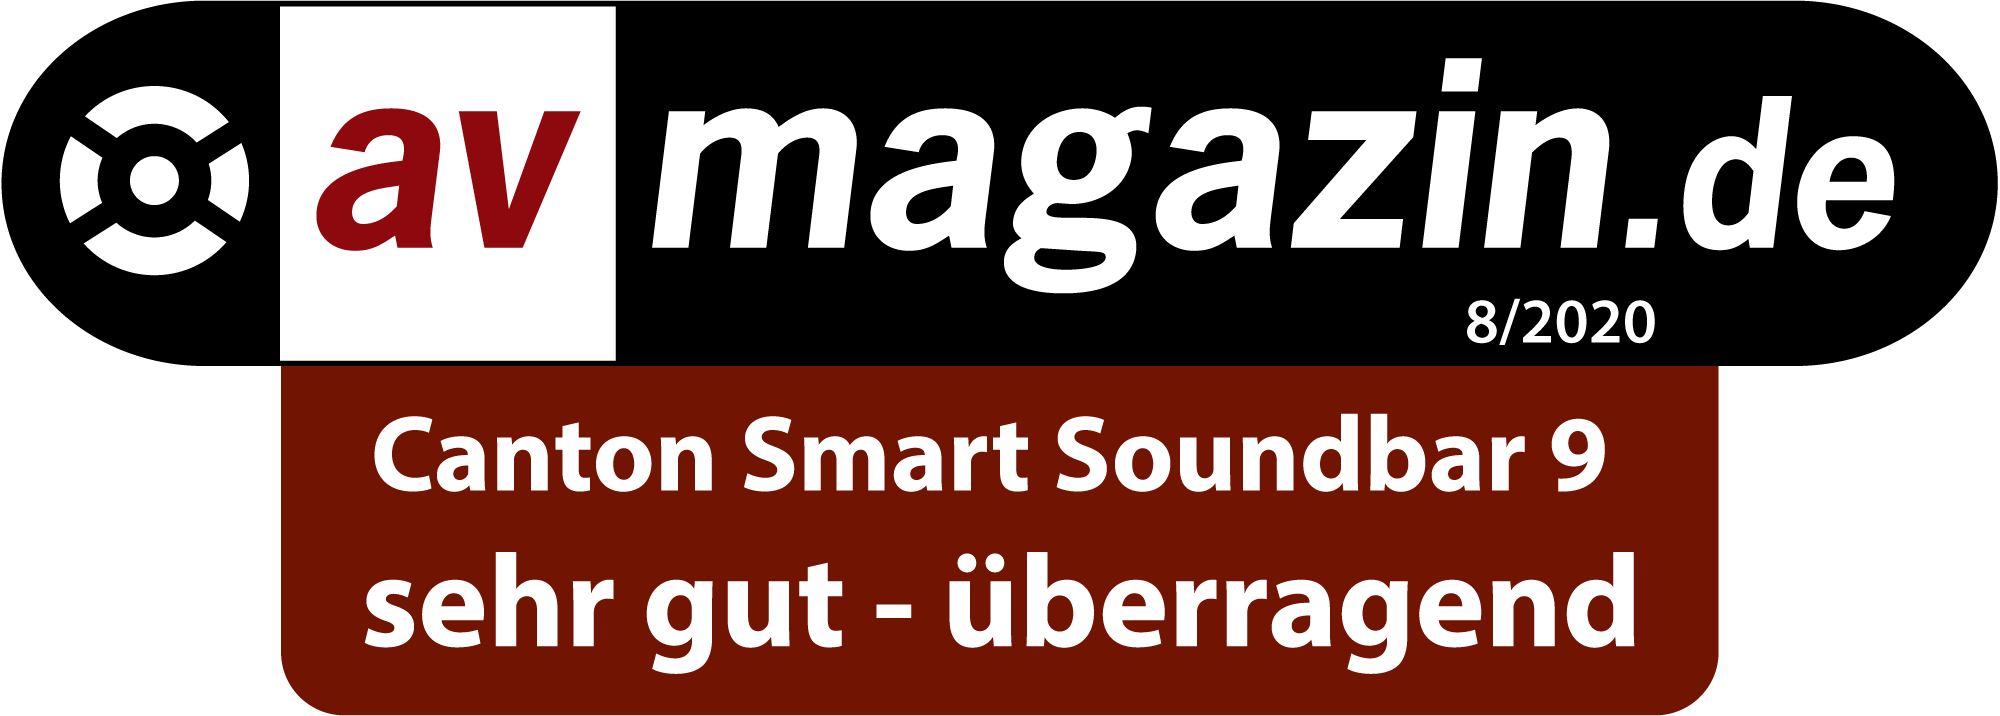 Smart_Soundbar_9_av-magazin-de_3